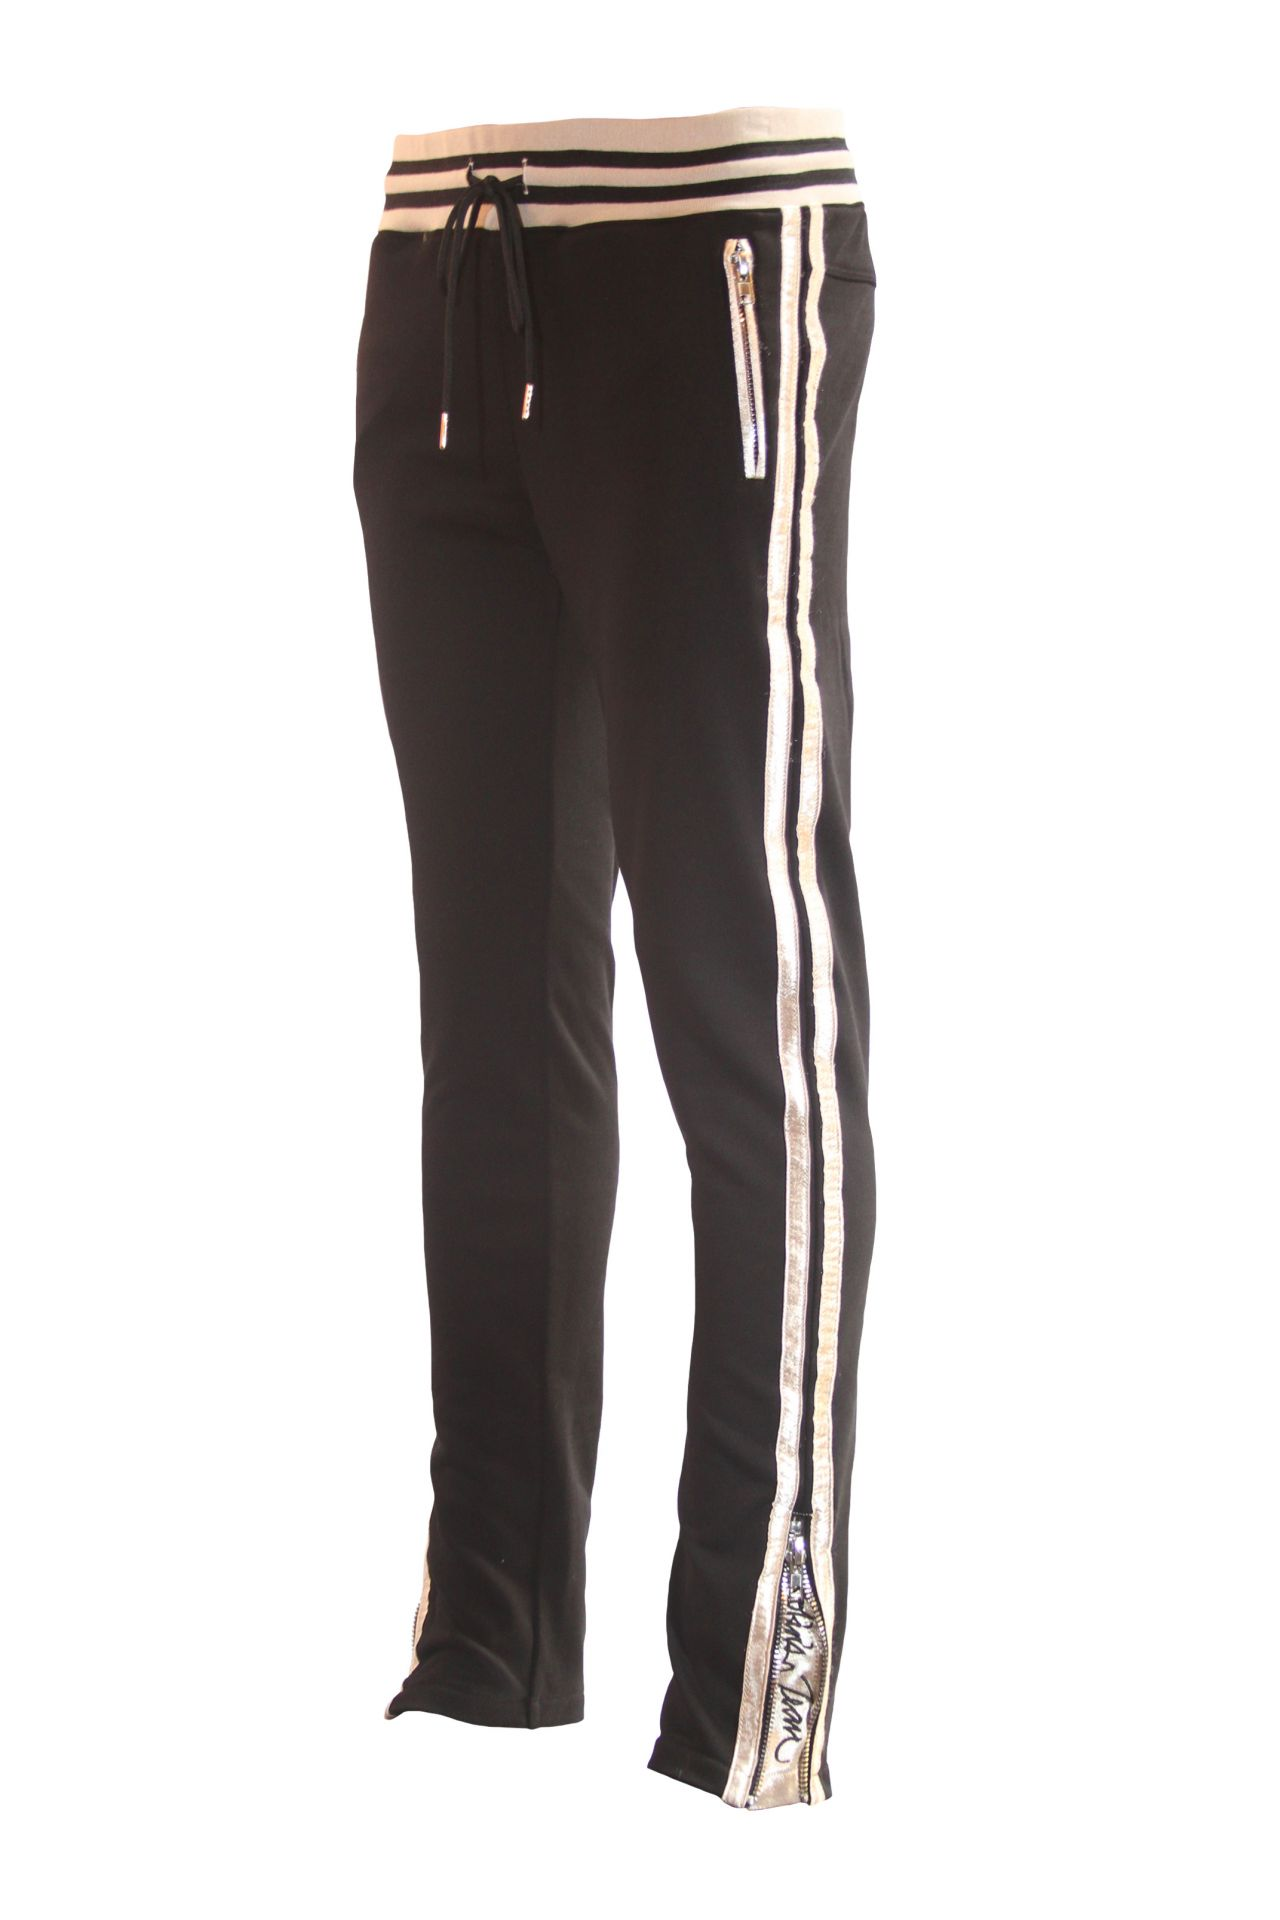 CLASSIC JOGGER IN BLACK WITH GOLD STRIPES